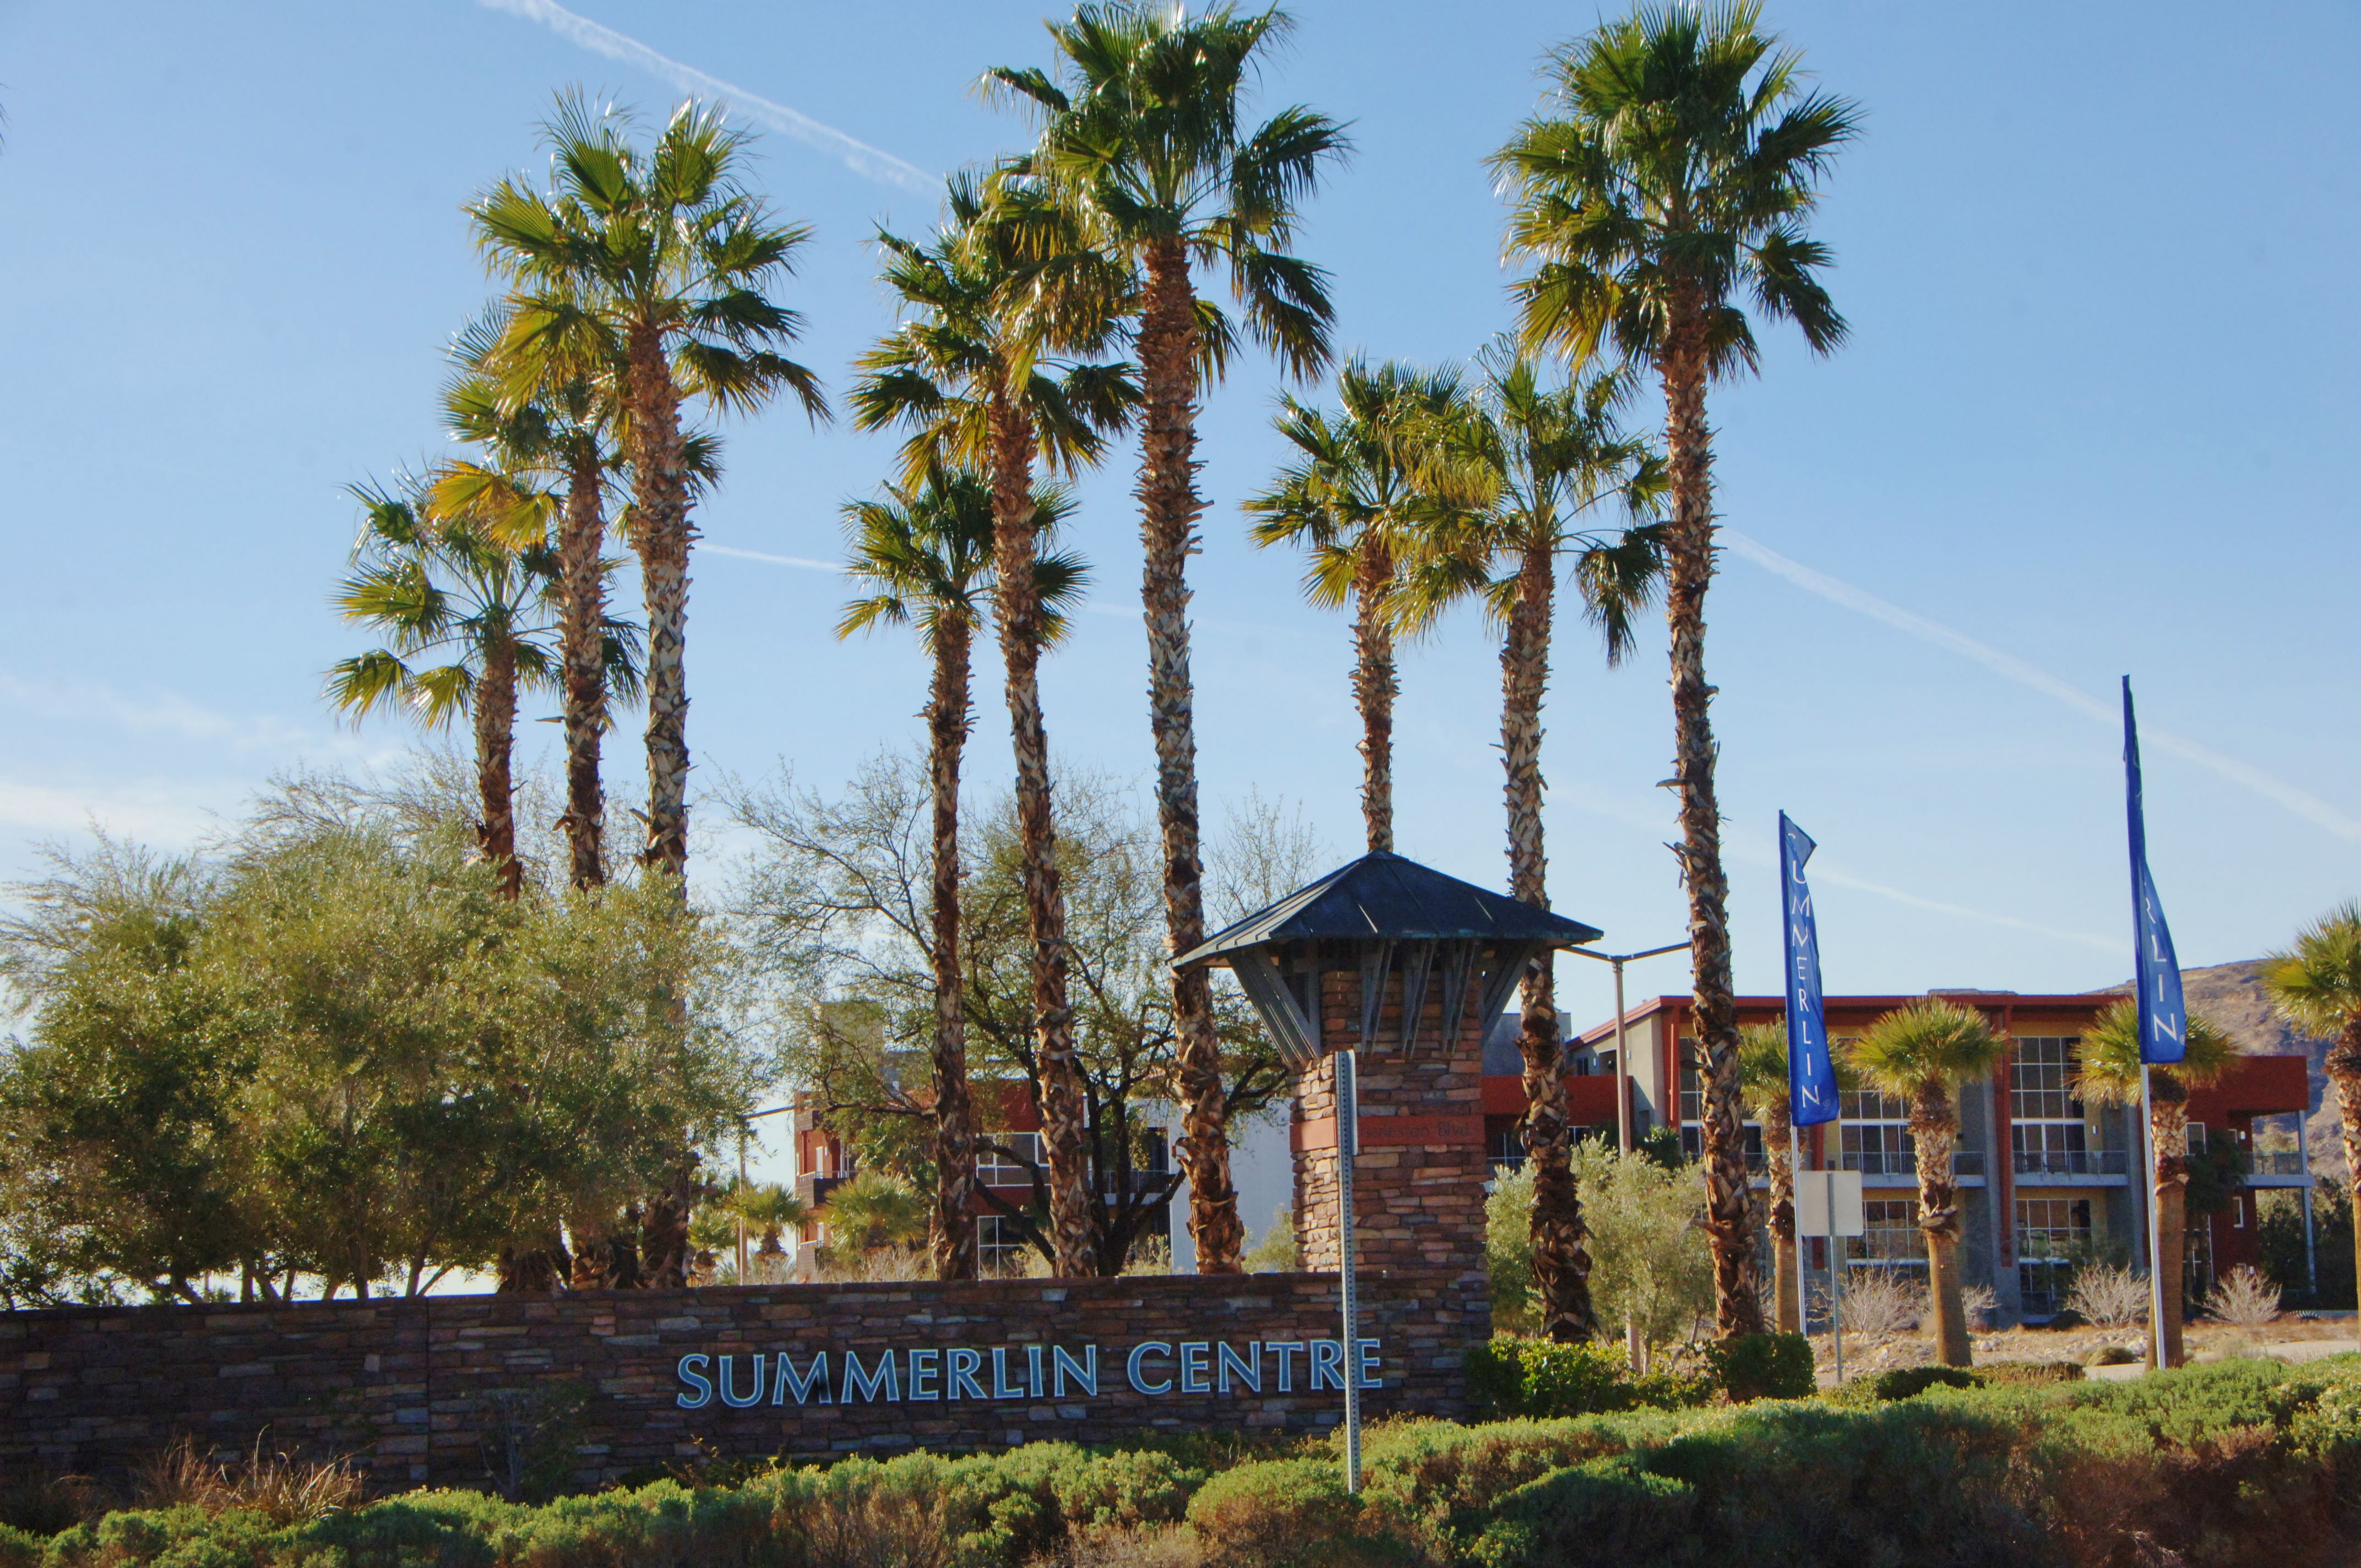 Moving to Las Vegas - A Guide to the Best Neighborhoods in Las Vegas - Summerlin Centre